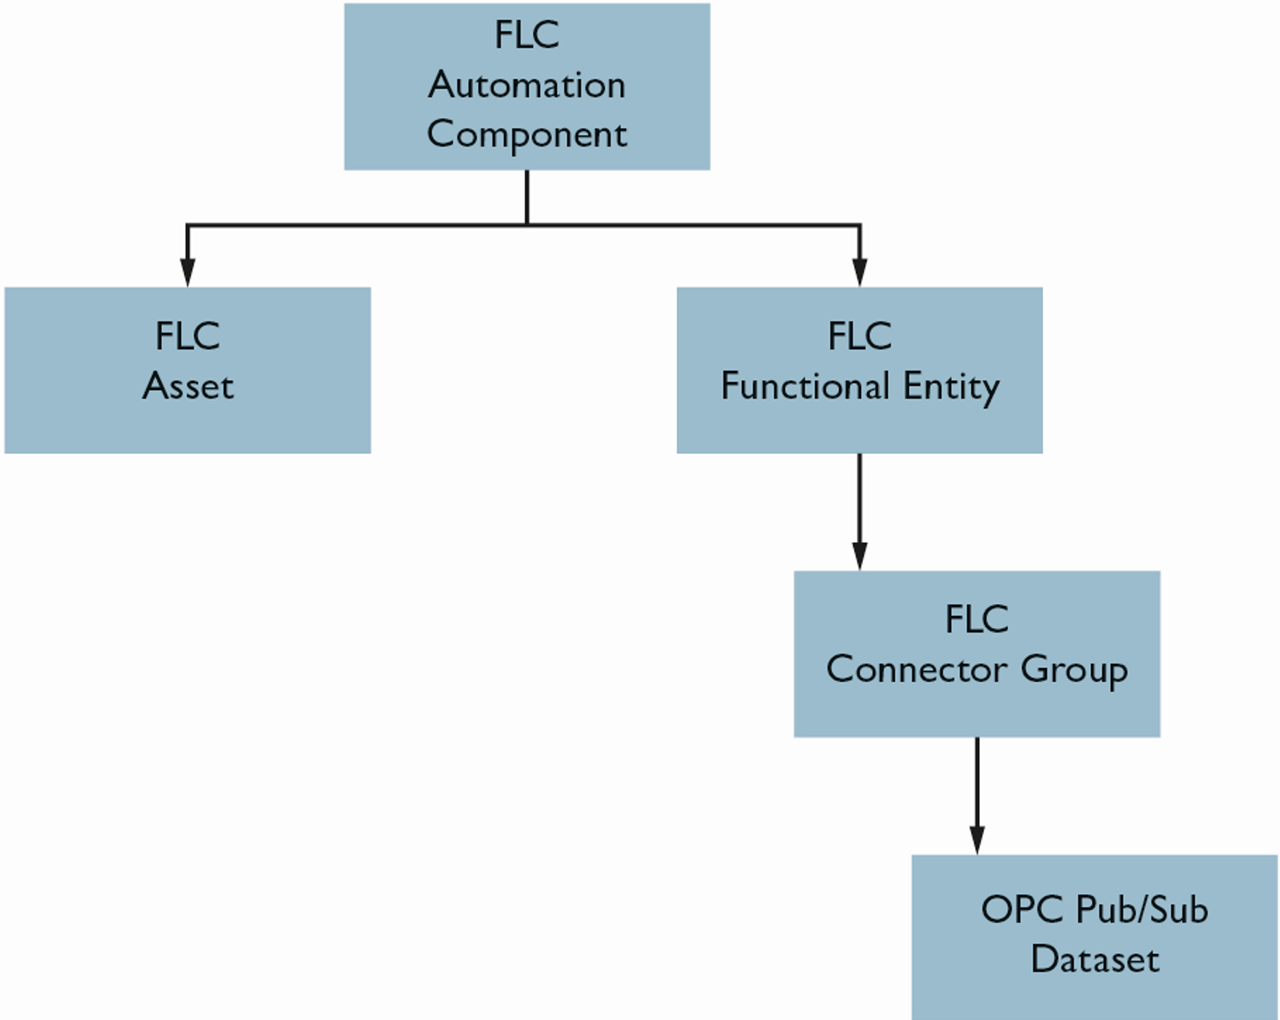 Separating the hardware and function in the FLC information model allows the flexible combination of different functions in one automation component based on Pub/Sub datasets.